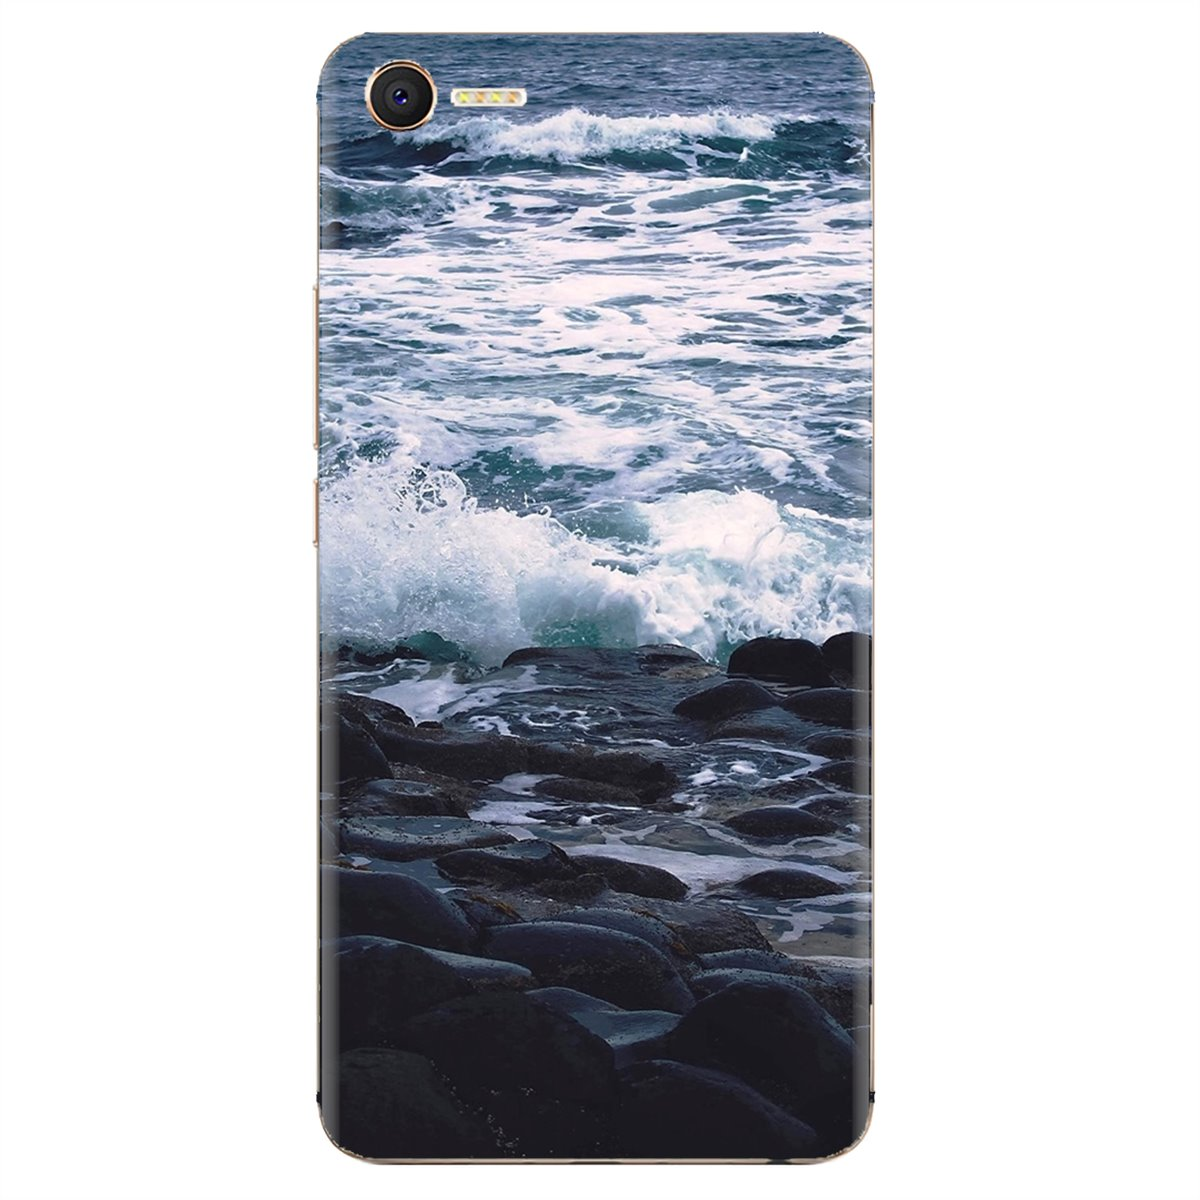 Riding On The Beach Wallpaper Silicone Phone Bag Case For Iphone 11 Pro 4 4s 5 5s Se 5c 6 6s 7 8 X Xr Xs Plus Max For Ipod Touch Fitted Cases Aliexpress